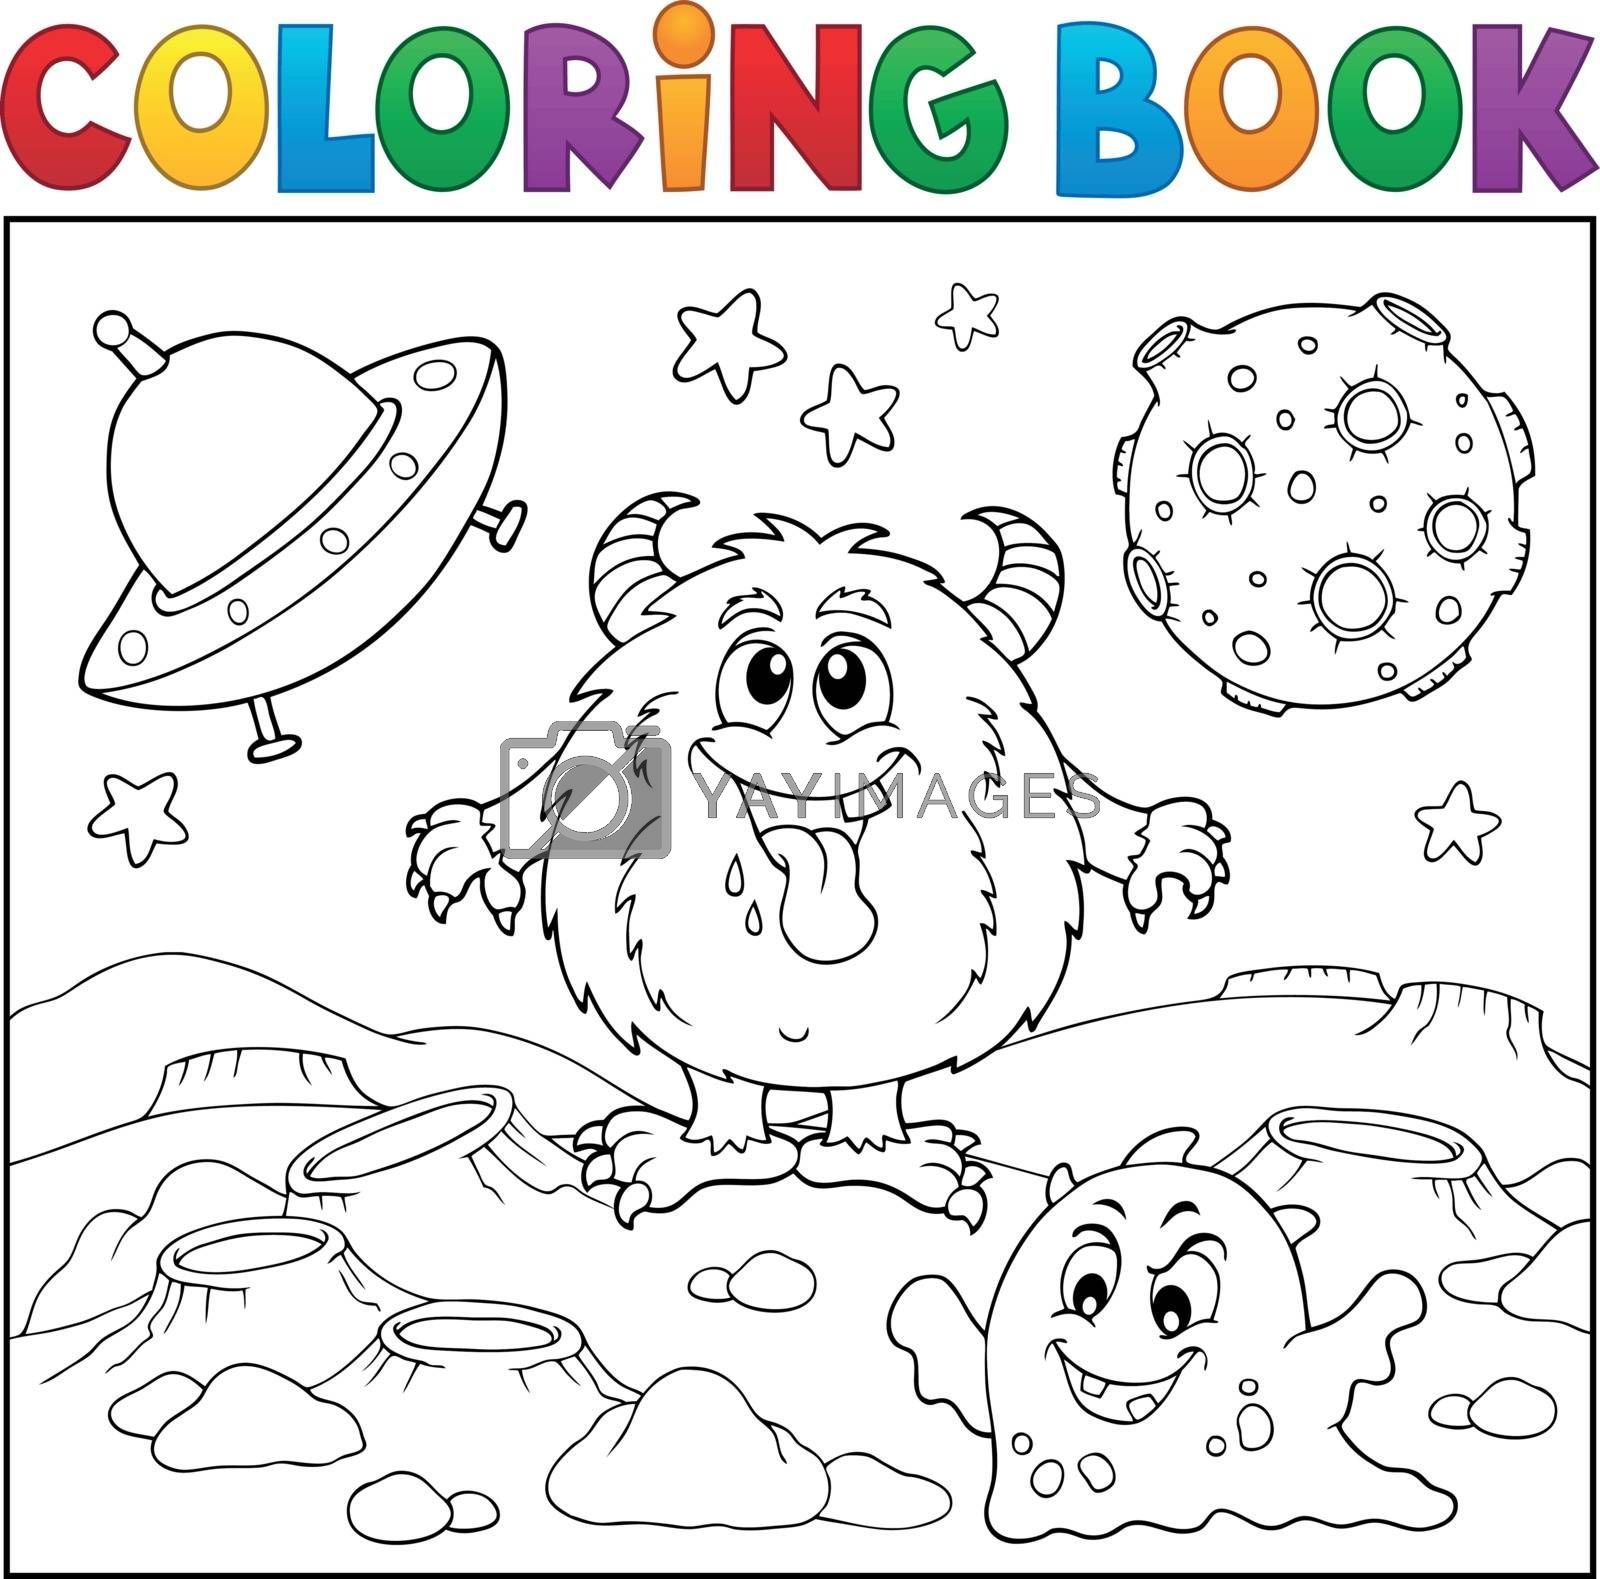 Coloring book monsters in space theme 1 - eps10 vector illustration.